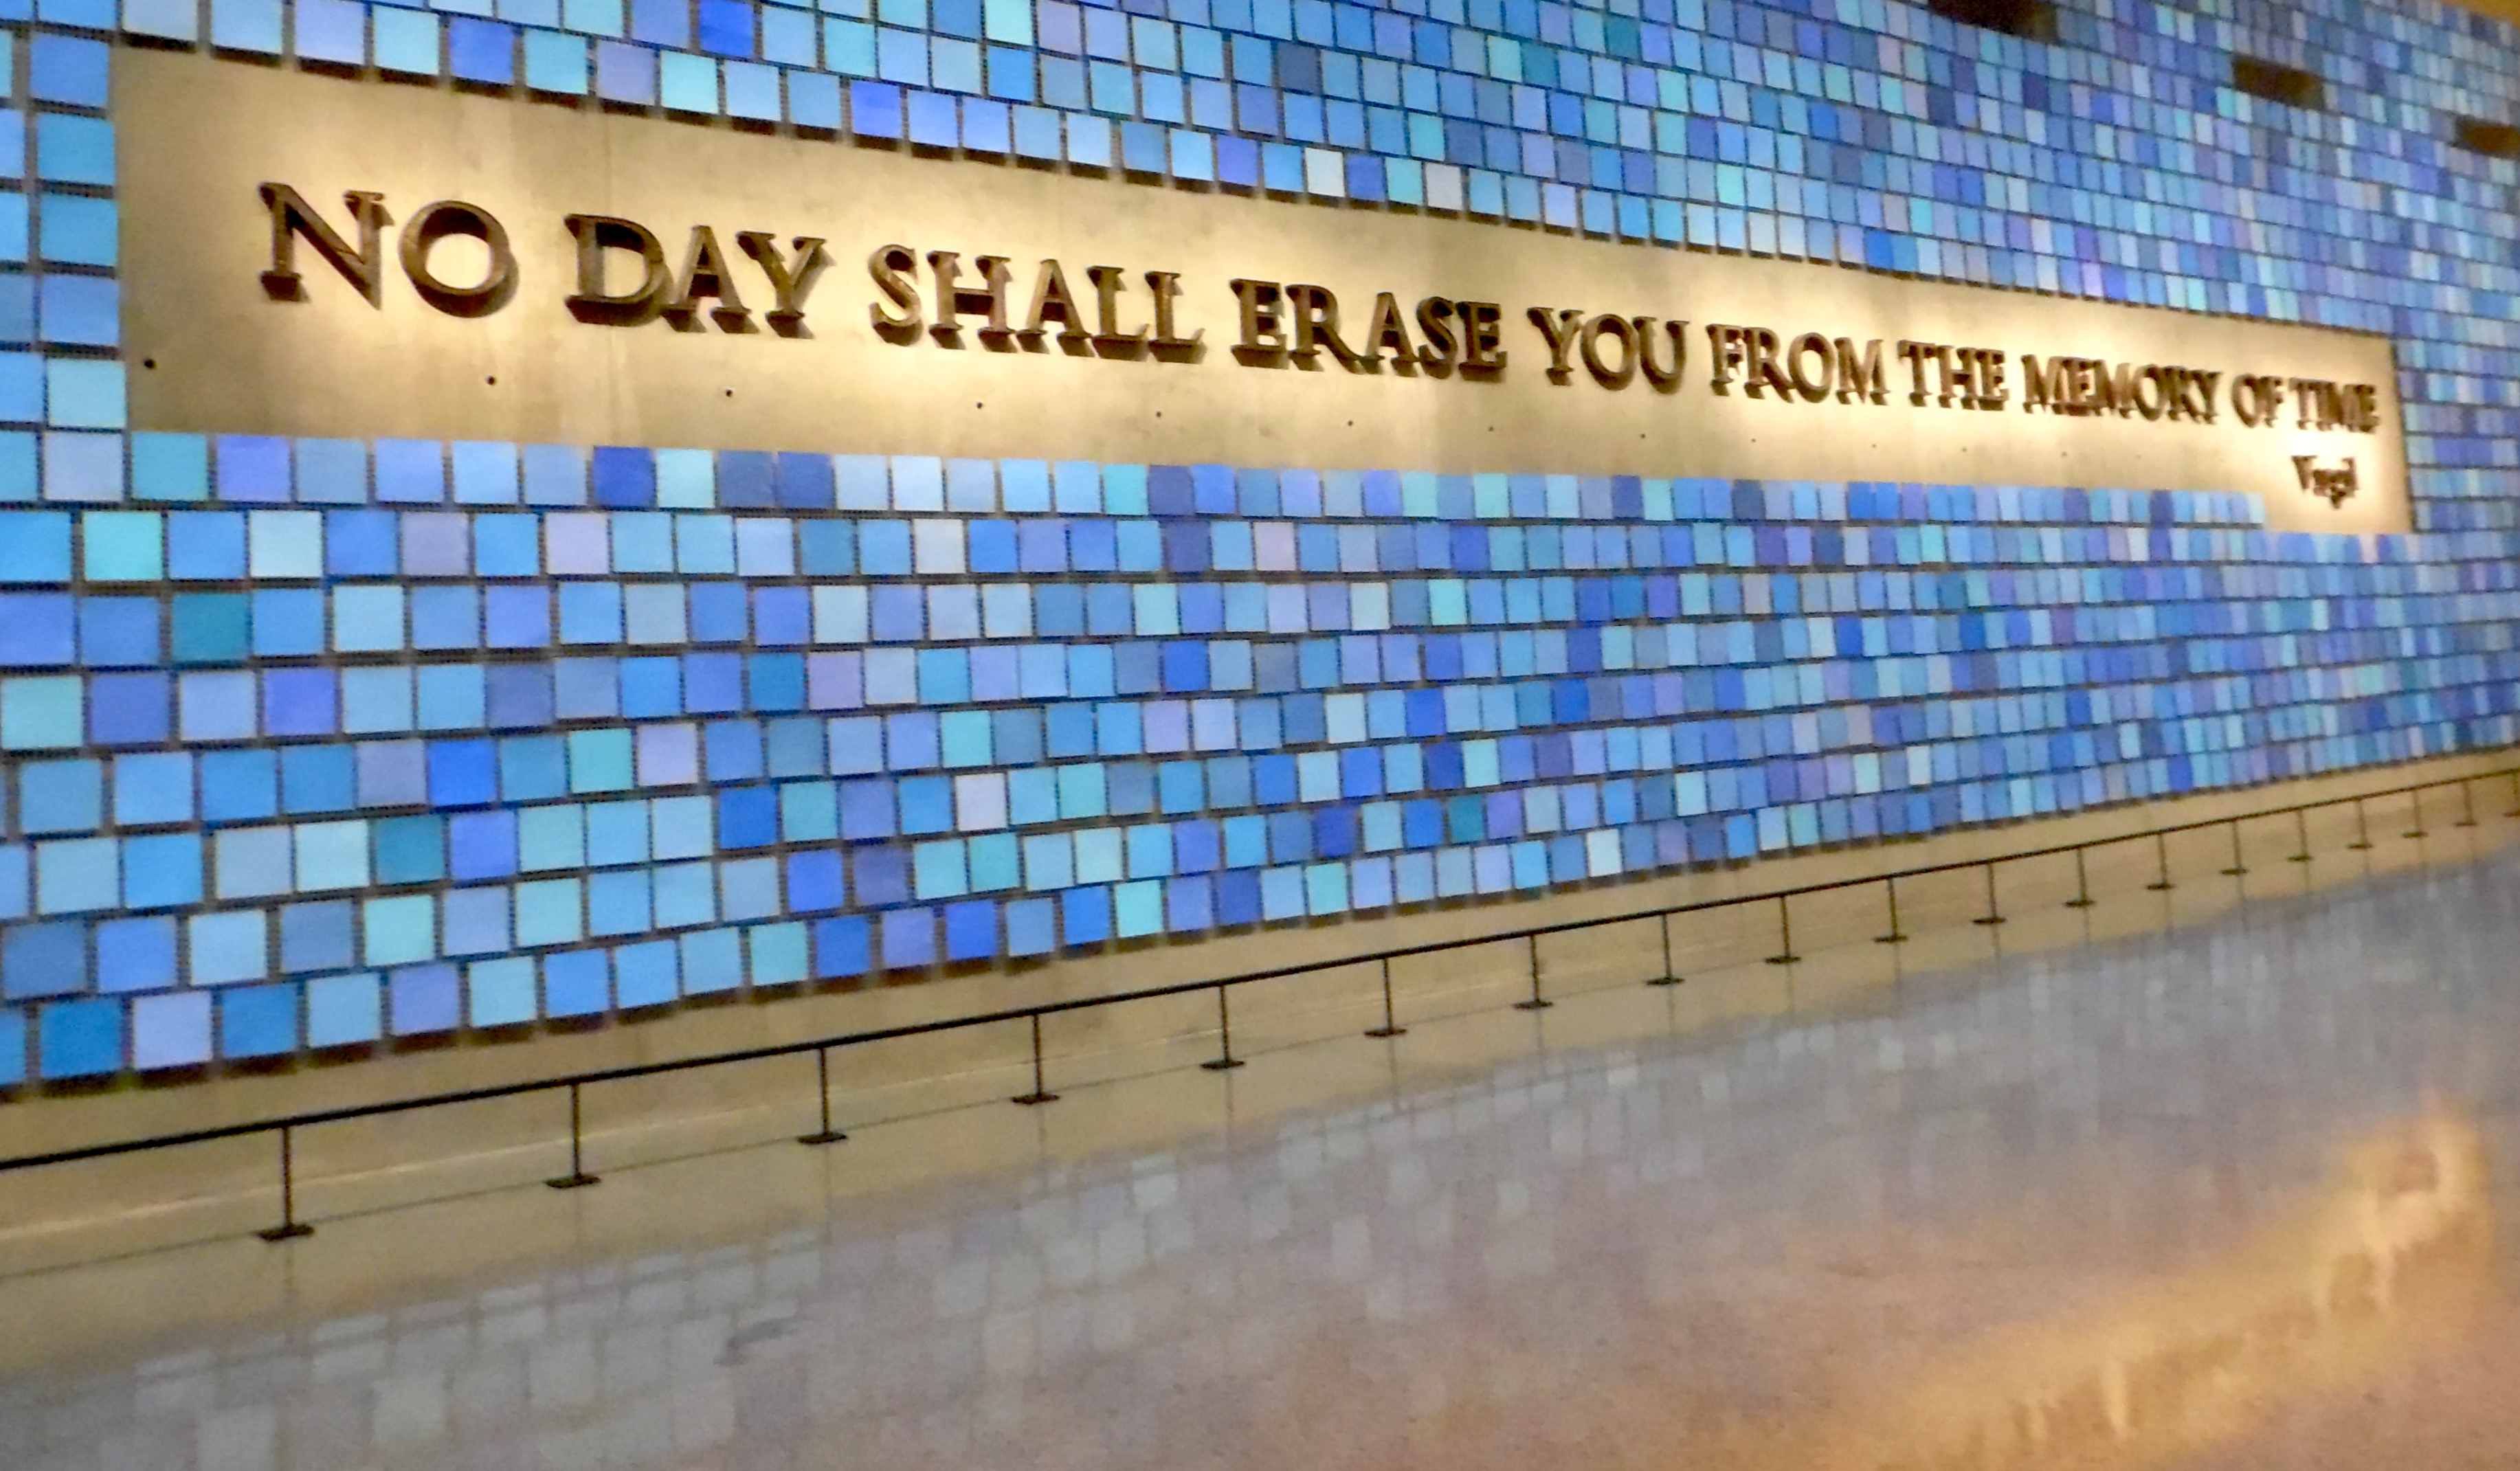 September 11th quotes quotes about september 11th sayings about - Controversial Virgil Quote